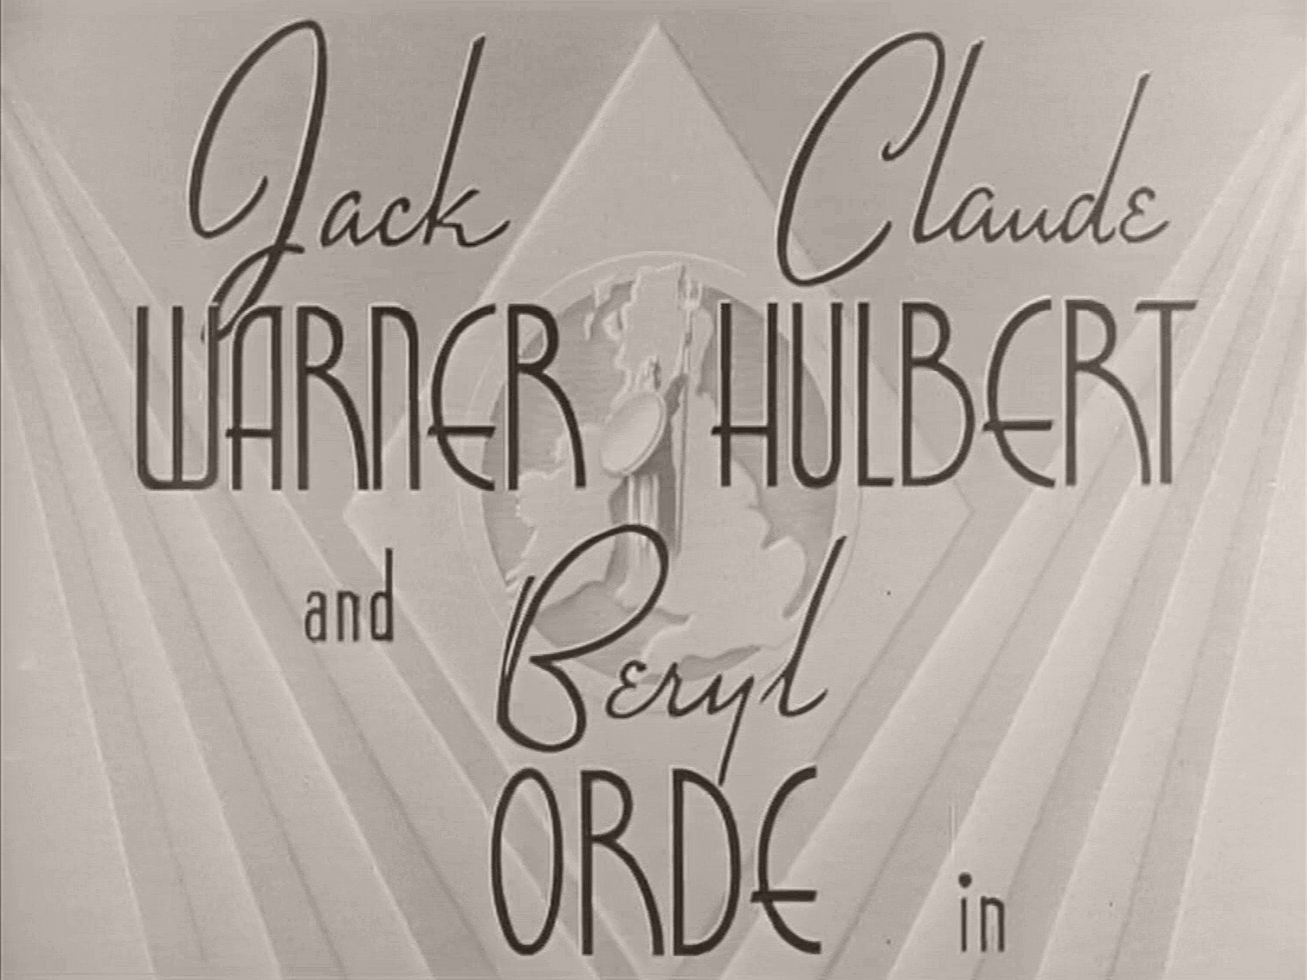 Main title from The Dummy Talks (1943) (2). Jack Warner, Claude Hulbert and Beryl Orde in